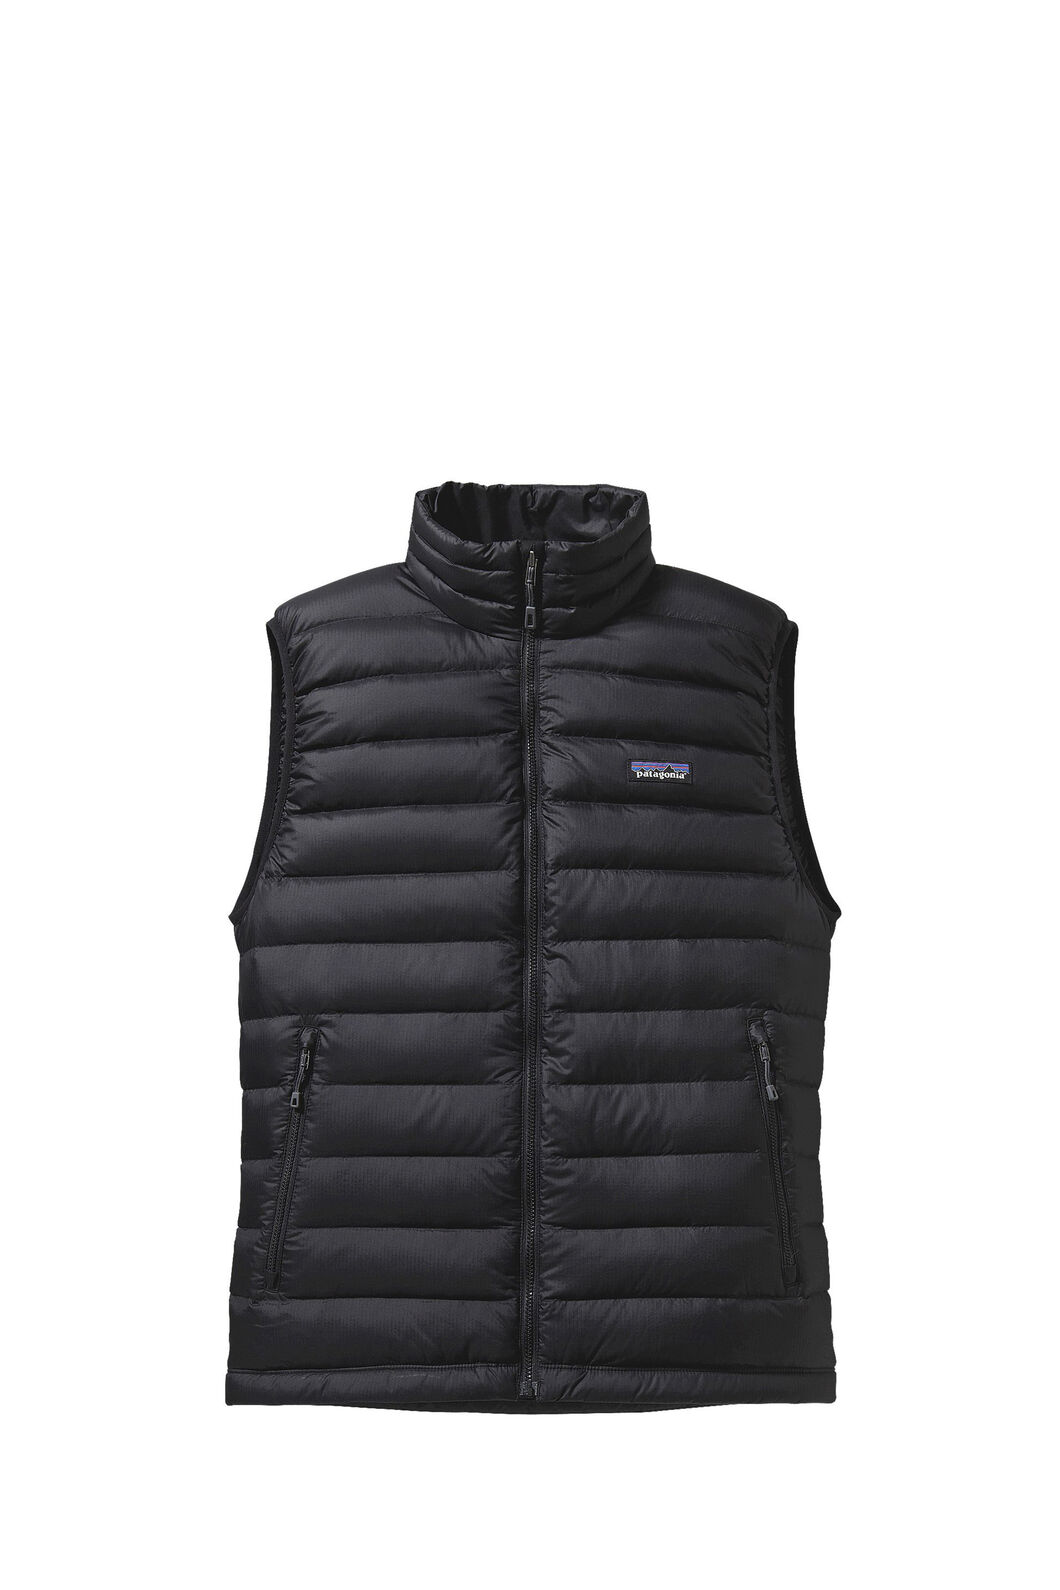 Patagonia Down Sweater Vest — Men's, Black, hi-res